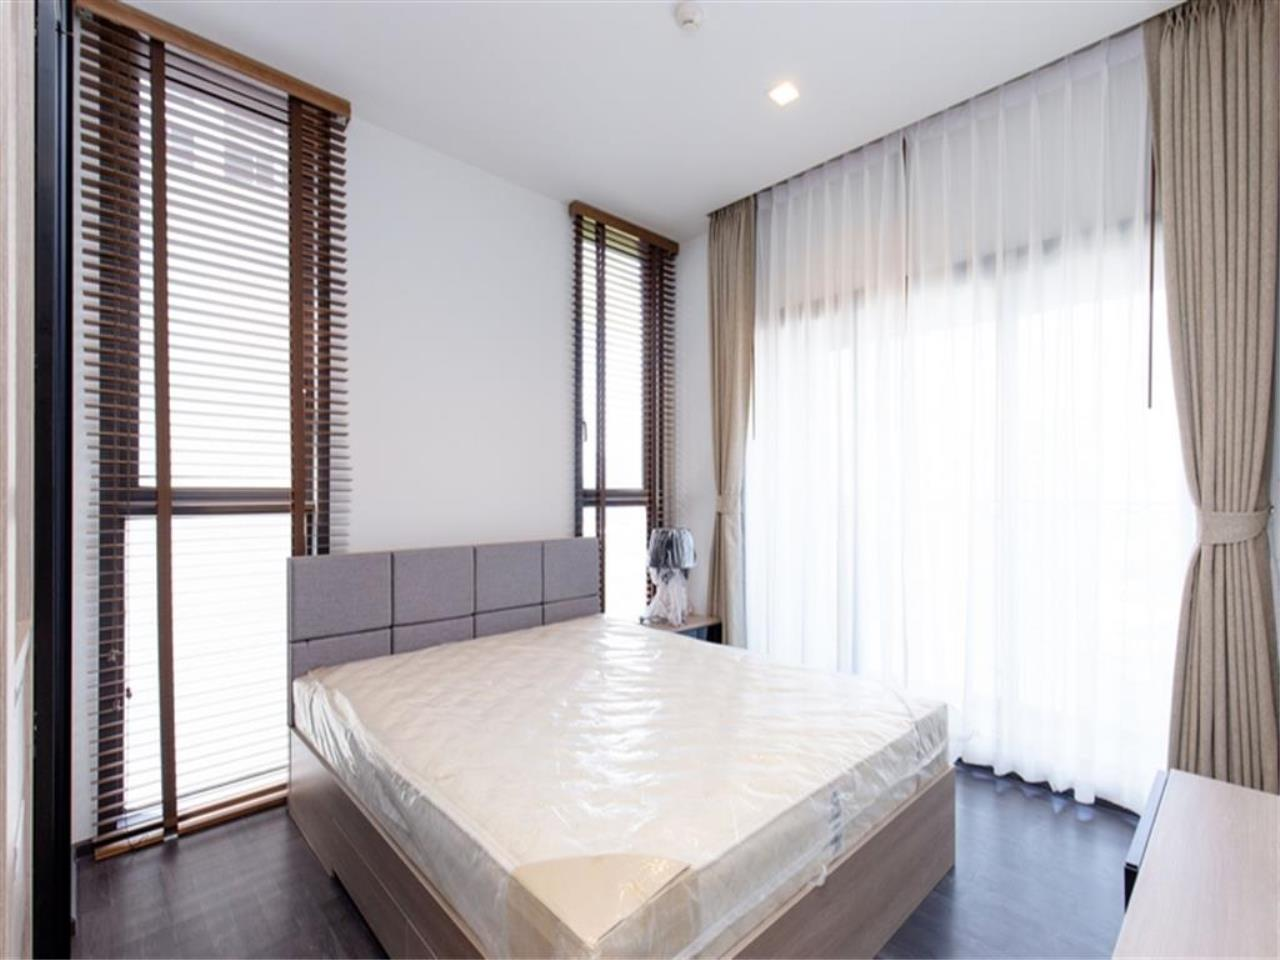 Plus Property Agency's Rent : CD188861 THE LINE ASOKE-RATCHADA Condominium New Petchburi - Rama 9 Bangkok 19